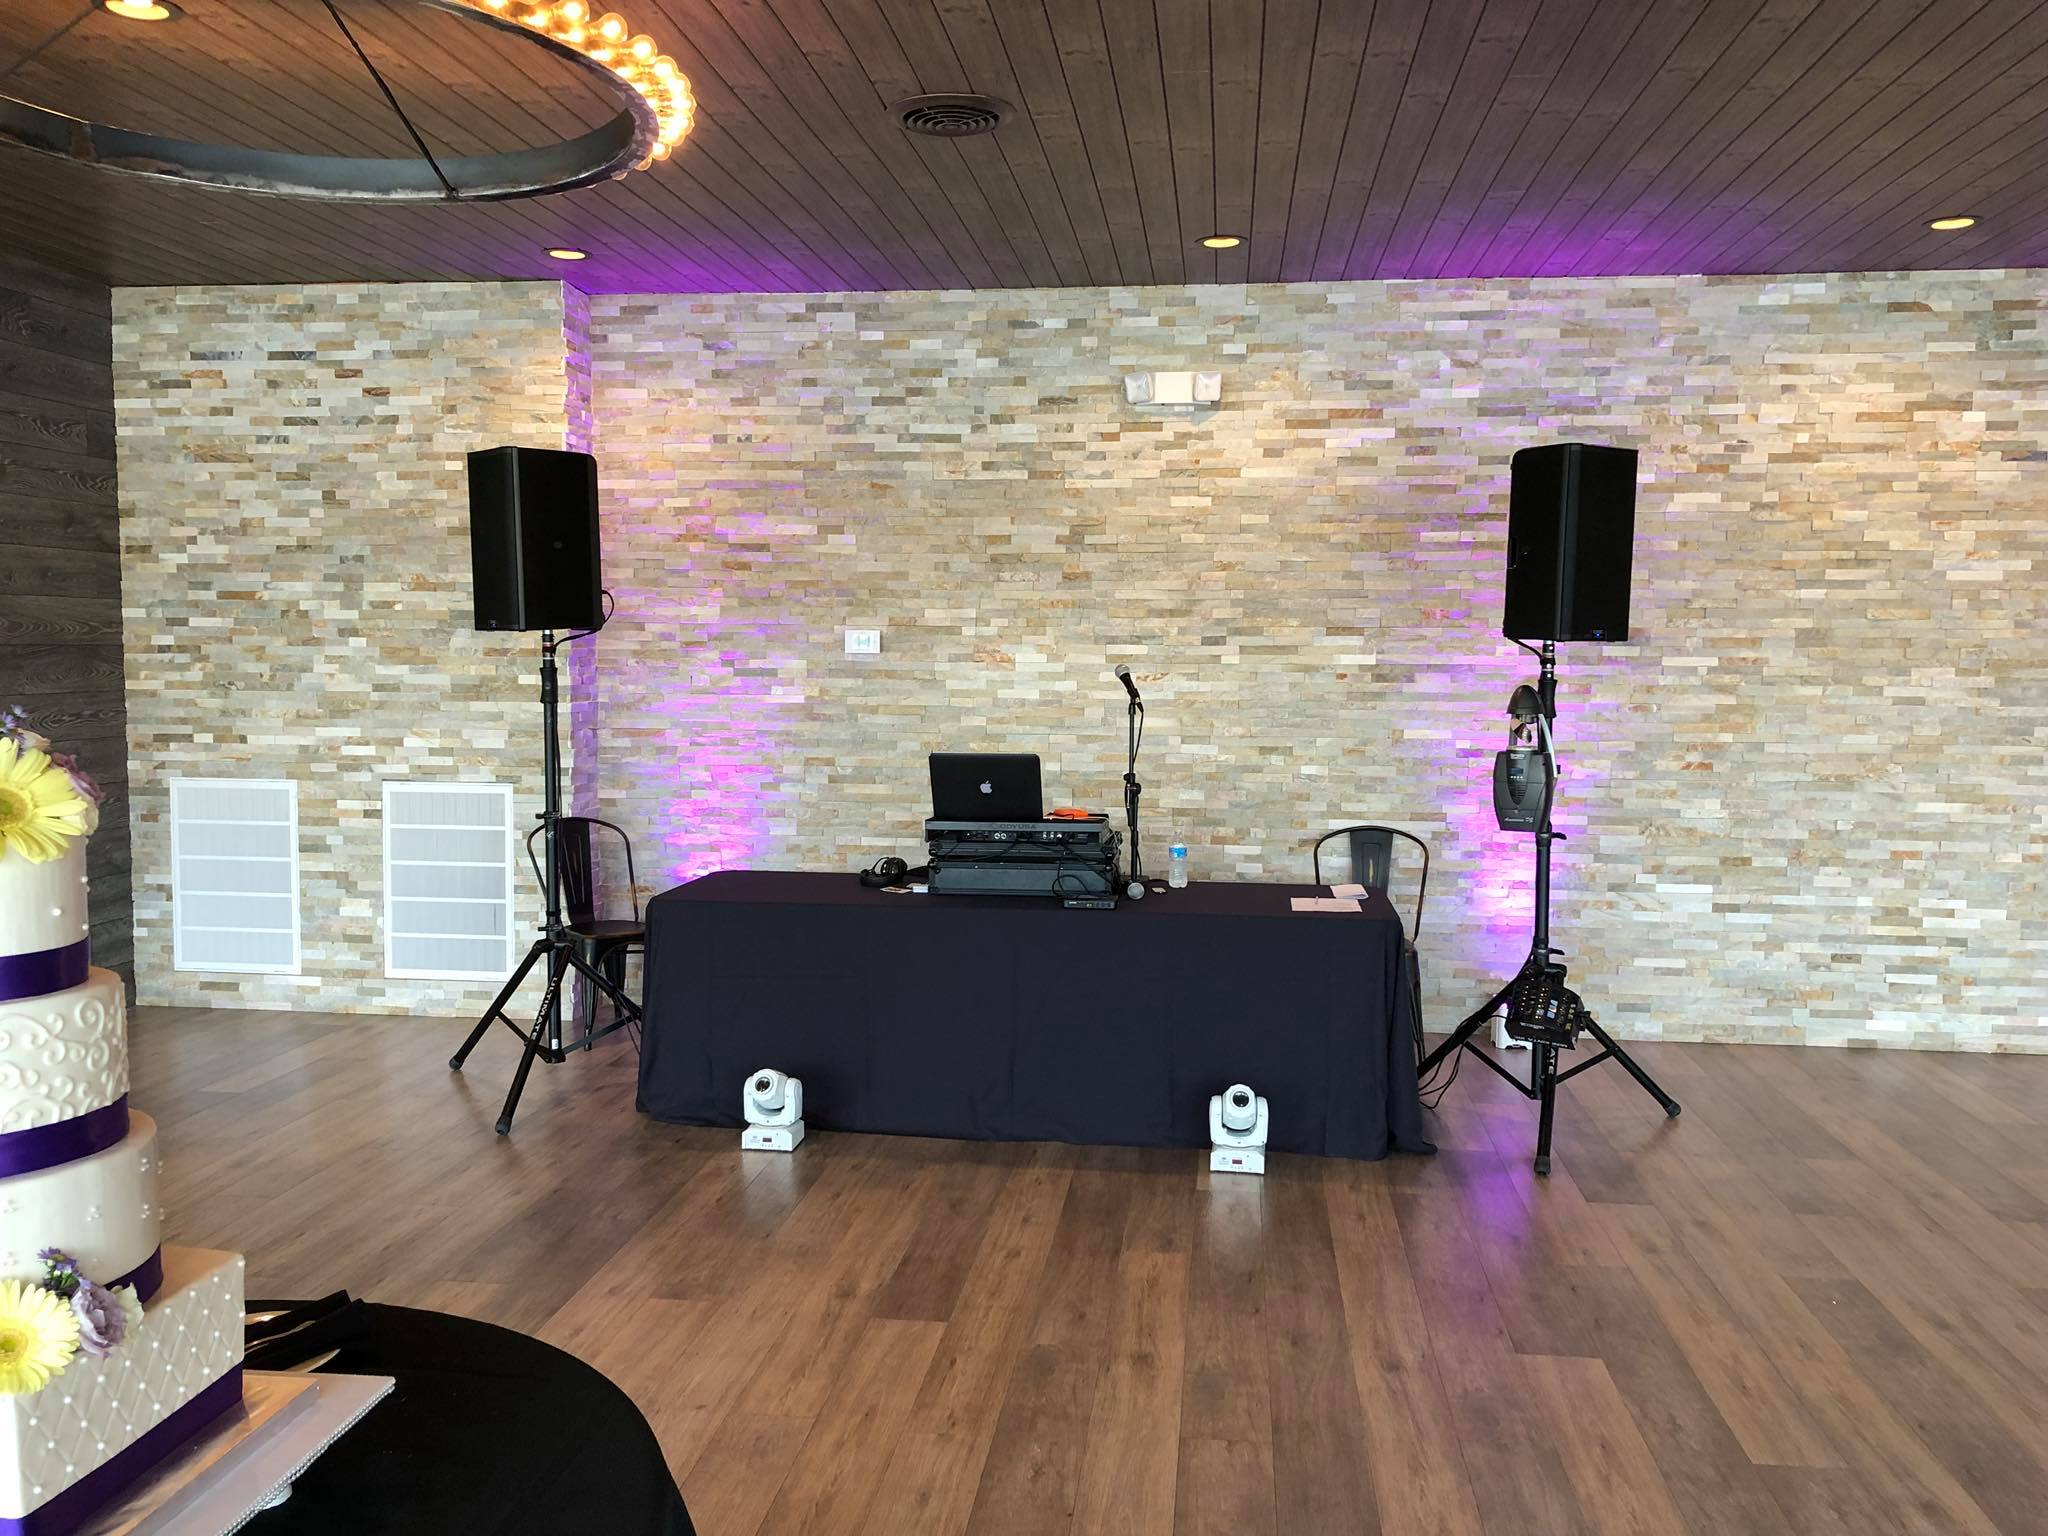 chicago wedding dj set up